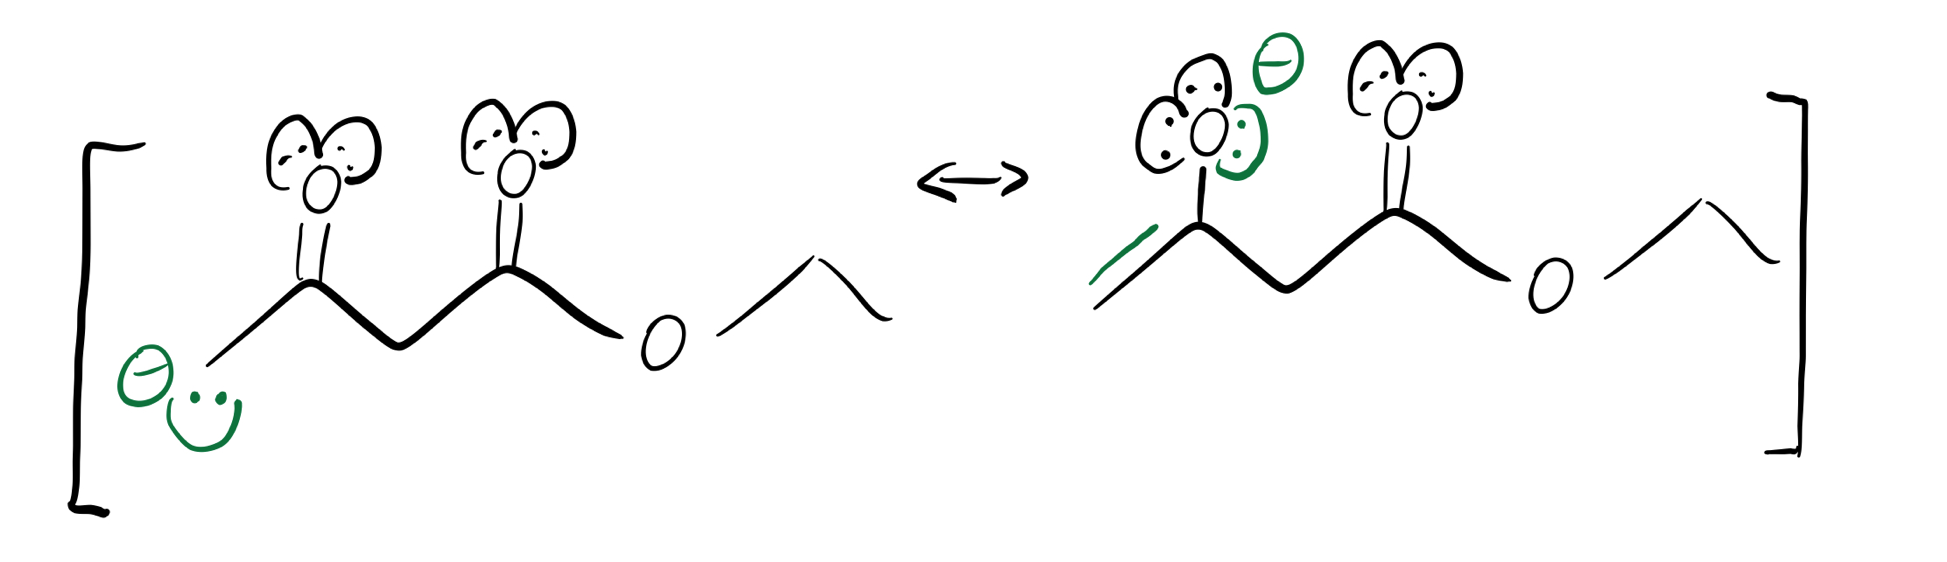 green-enolate-resonance-structures